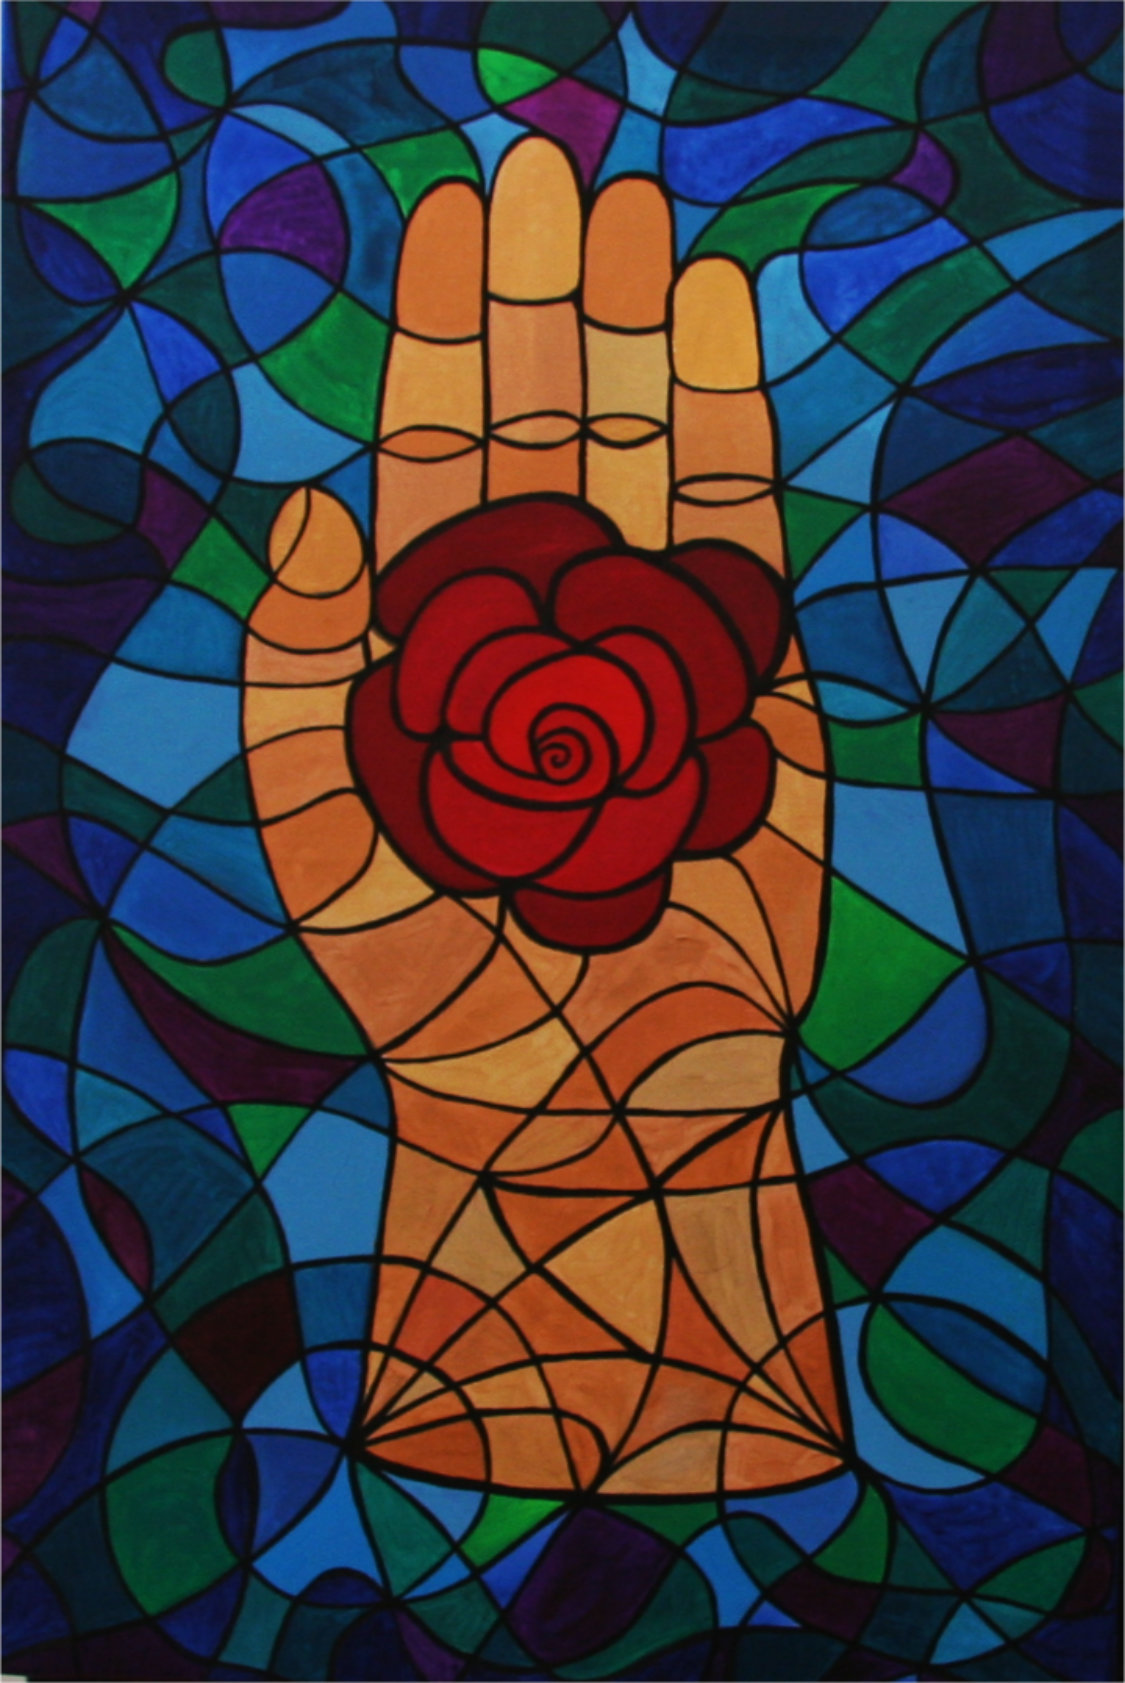 Rose in the hand symbol painting